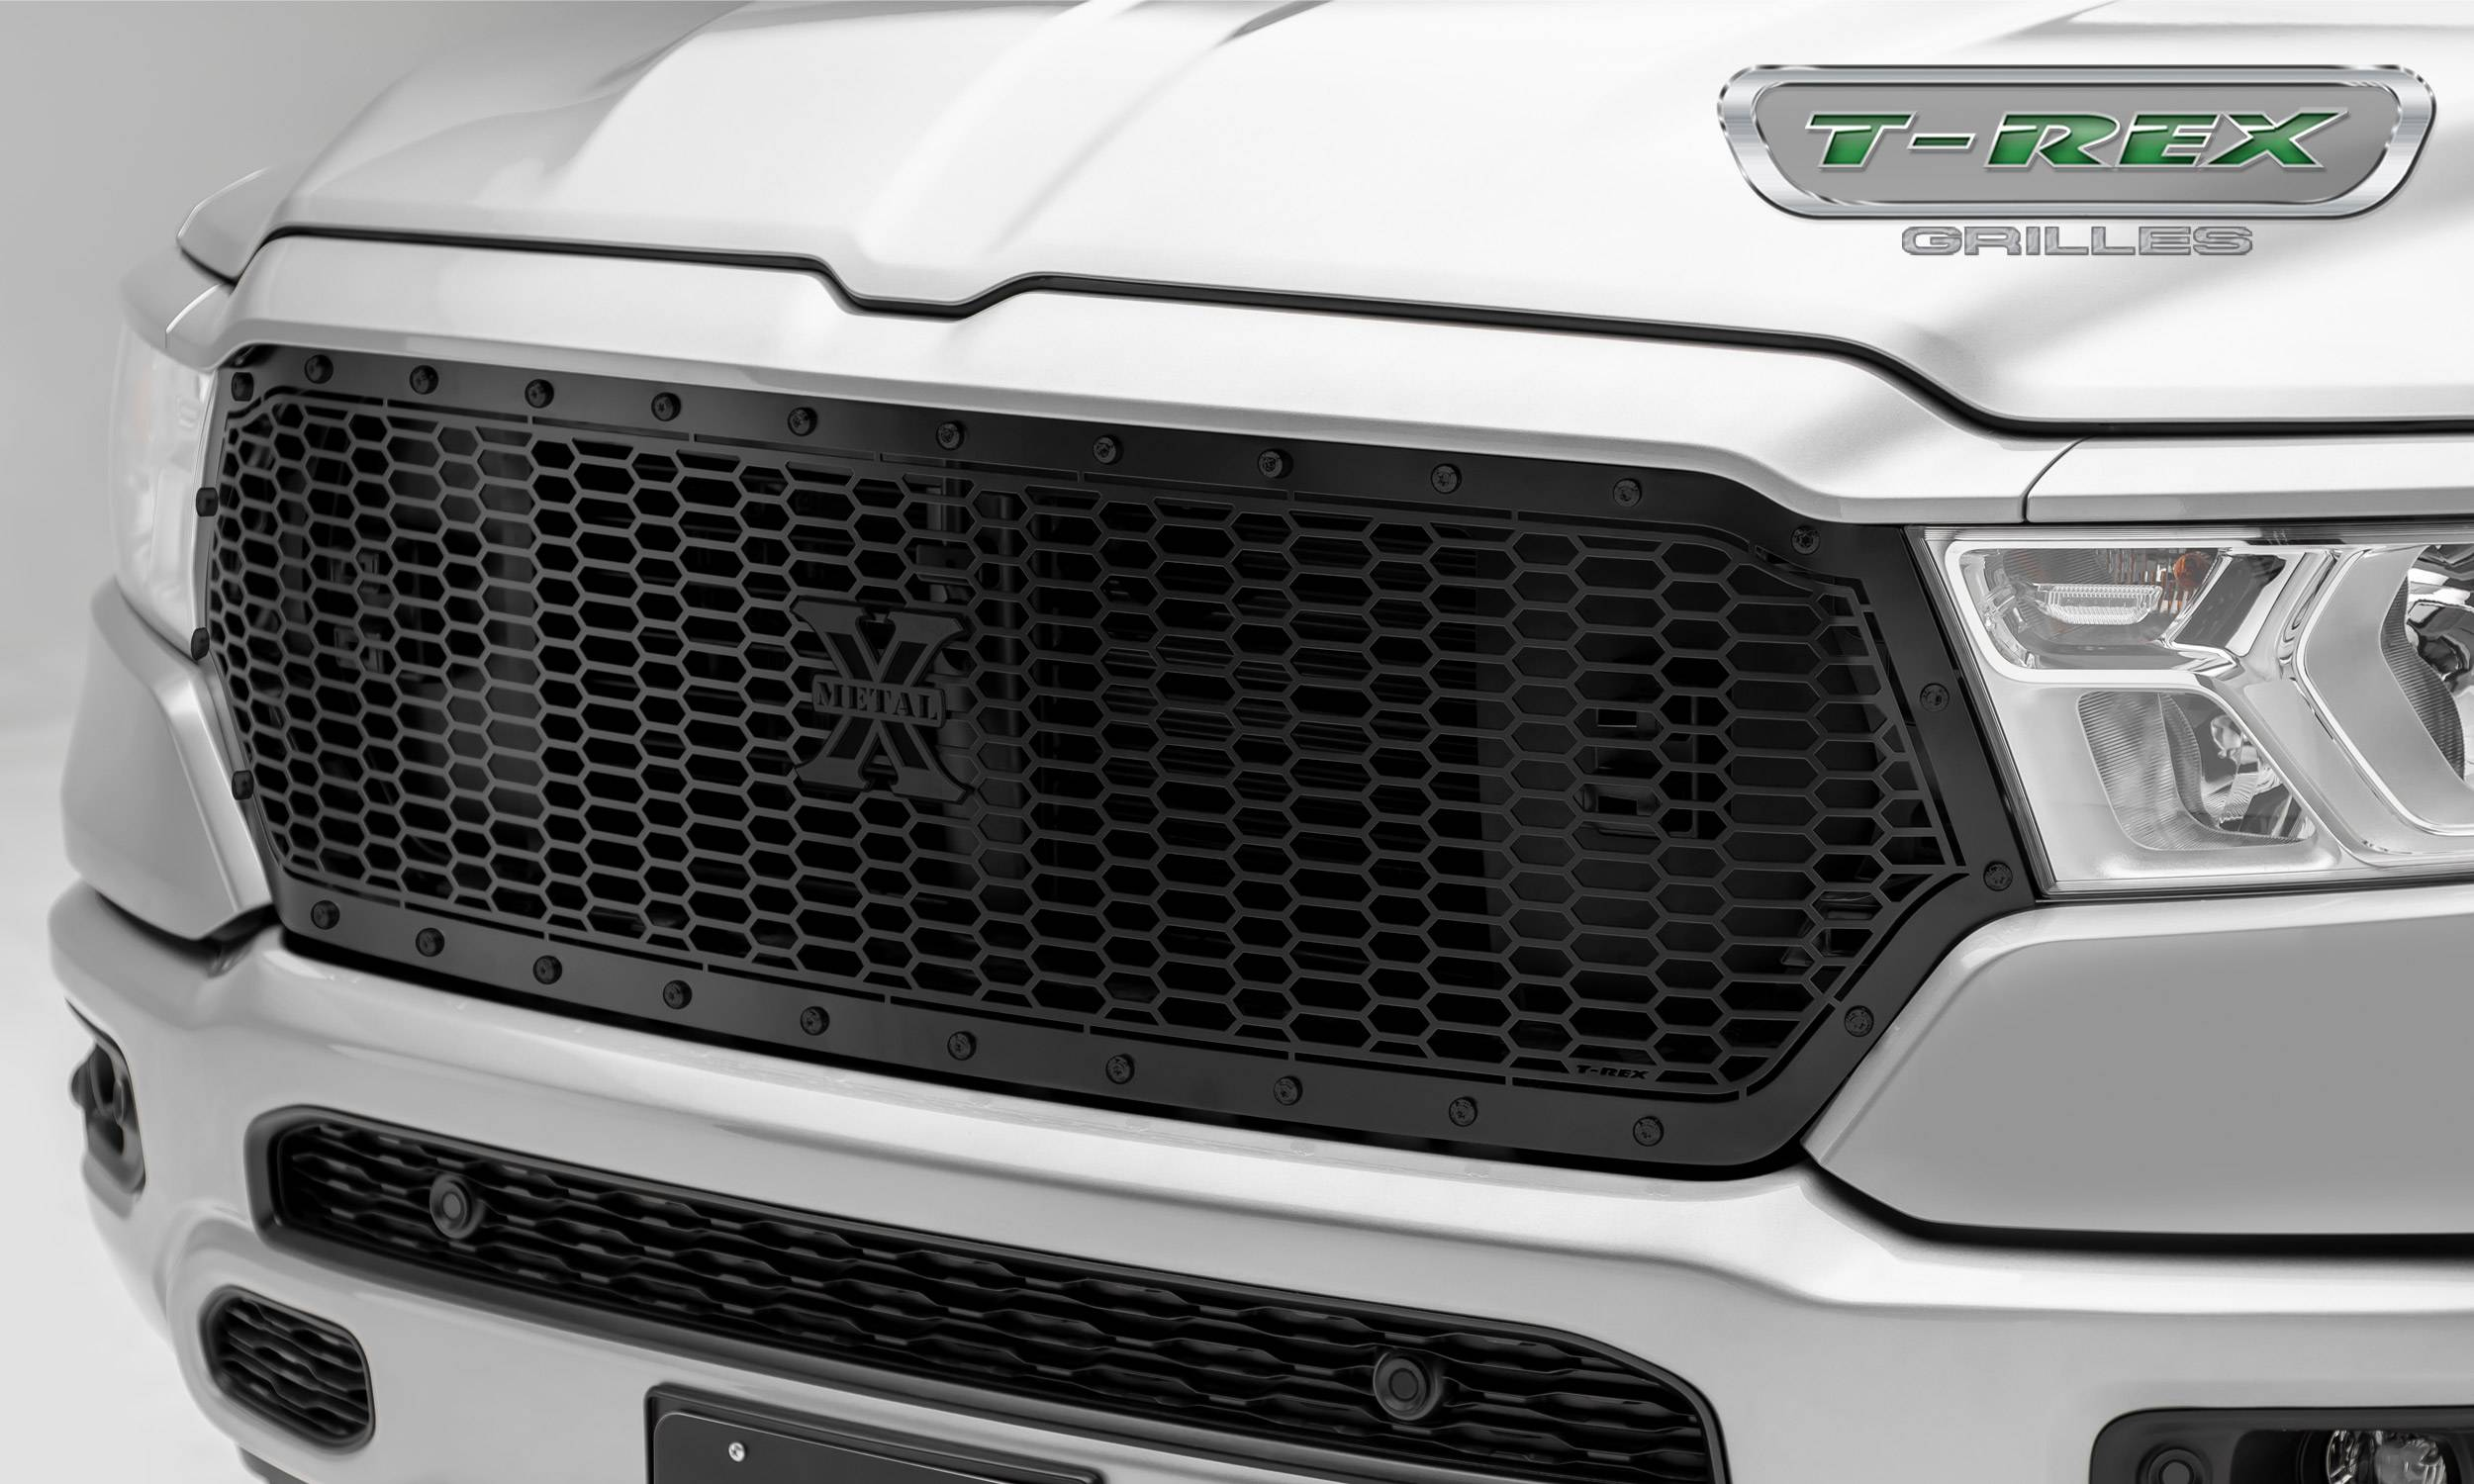 T-REX Grilles - RAM 1500 - Stealth Laser X Series - Main Grille Replacement w/ Laser Cut Repeating Pattern & Black Studs - Black Powder Coat Finish - Pt # 7714651-BR